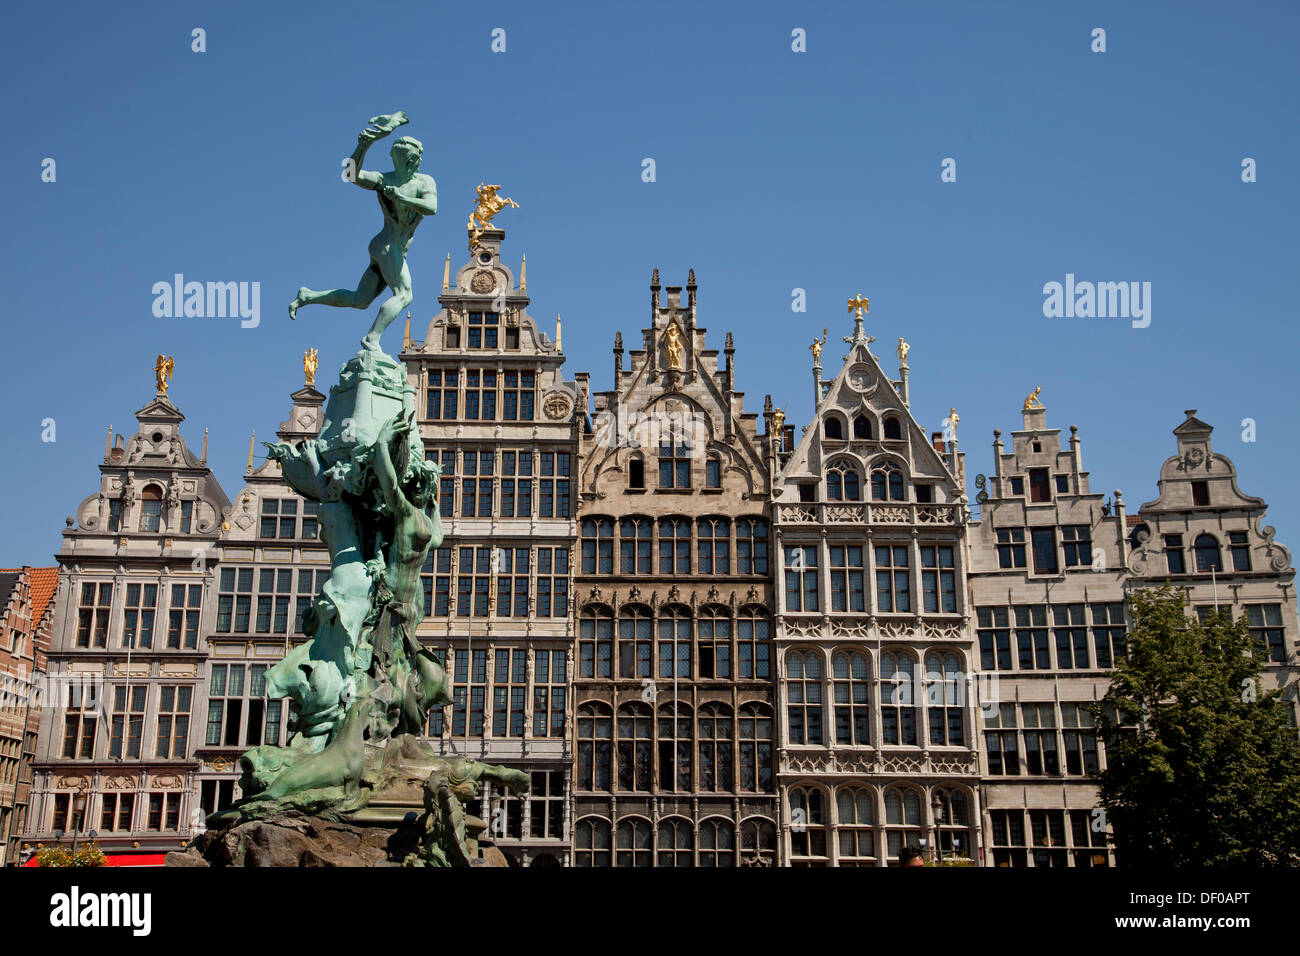 Statue of Brabo and the giant's hand fountain and 16th-century Guildhouses at the market square Grote Markt in Antwerp, Belgium, - Stock Image